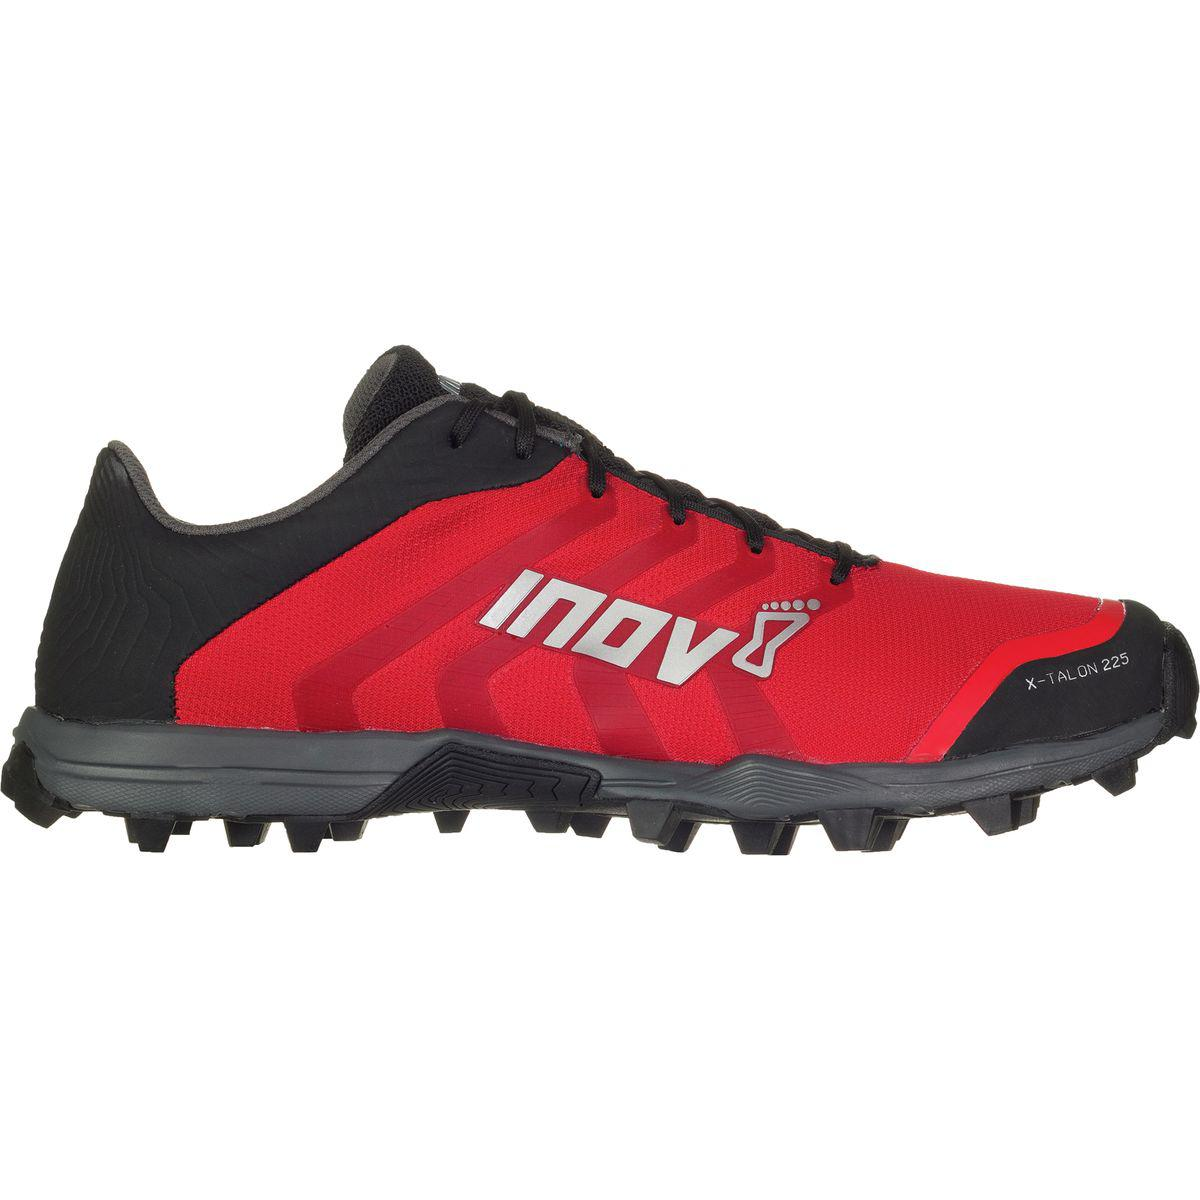 Lyst - Inov-8 X-talon 225 Trail Running Shoe in Red for Men 5673524433707